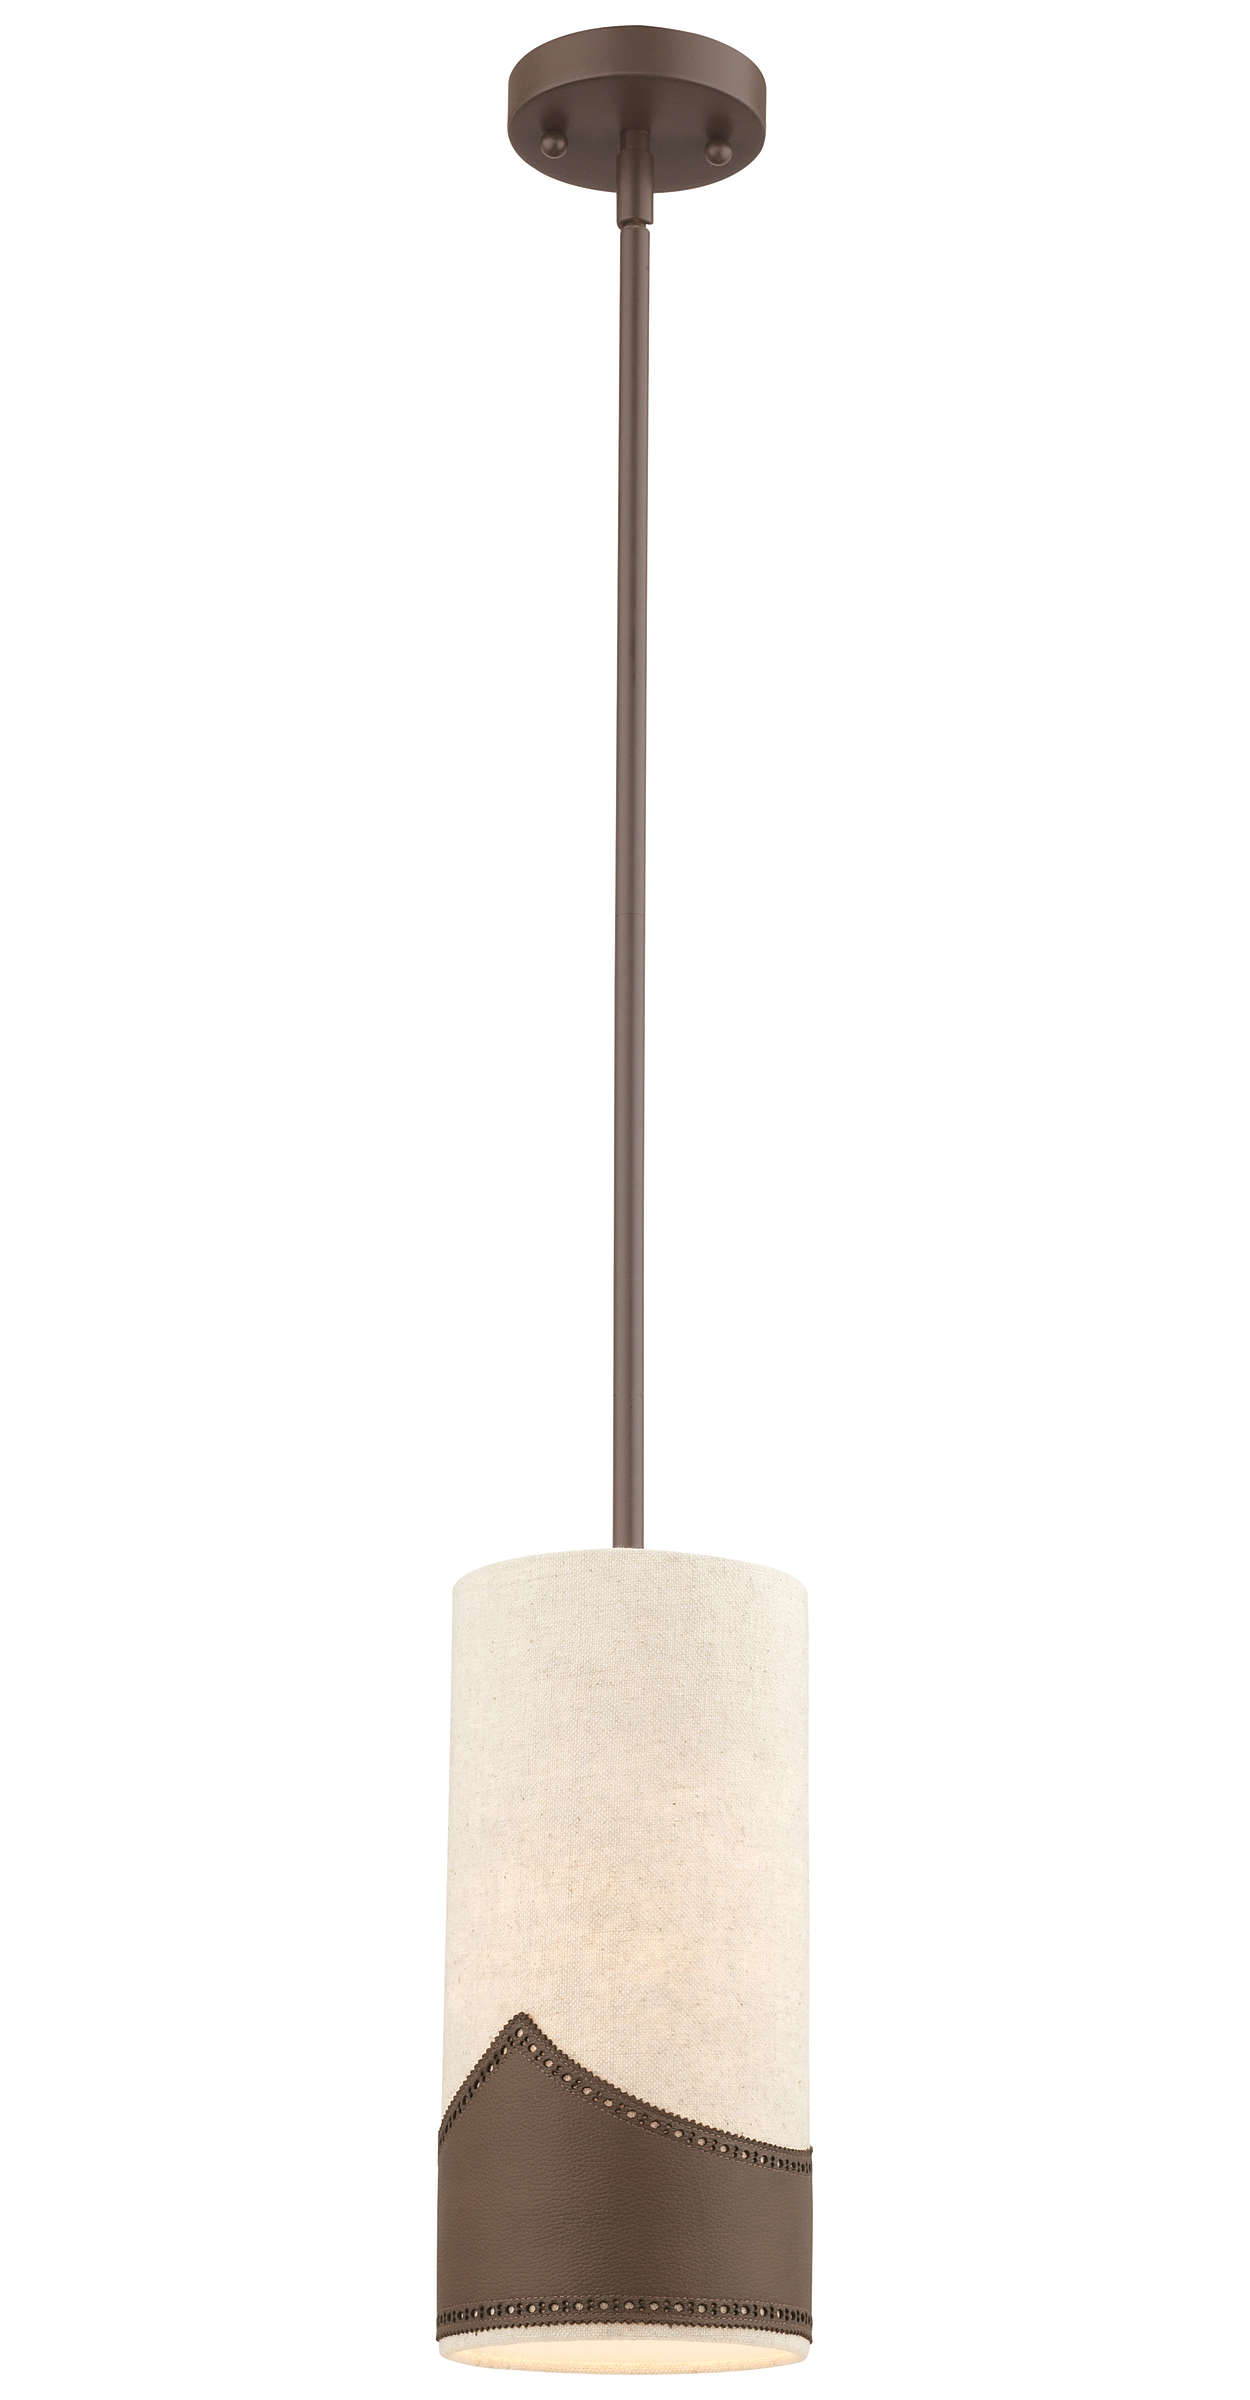 Wing Tip 1-light Pendant in Deep Bronze finish